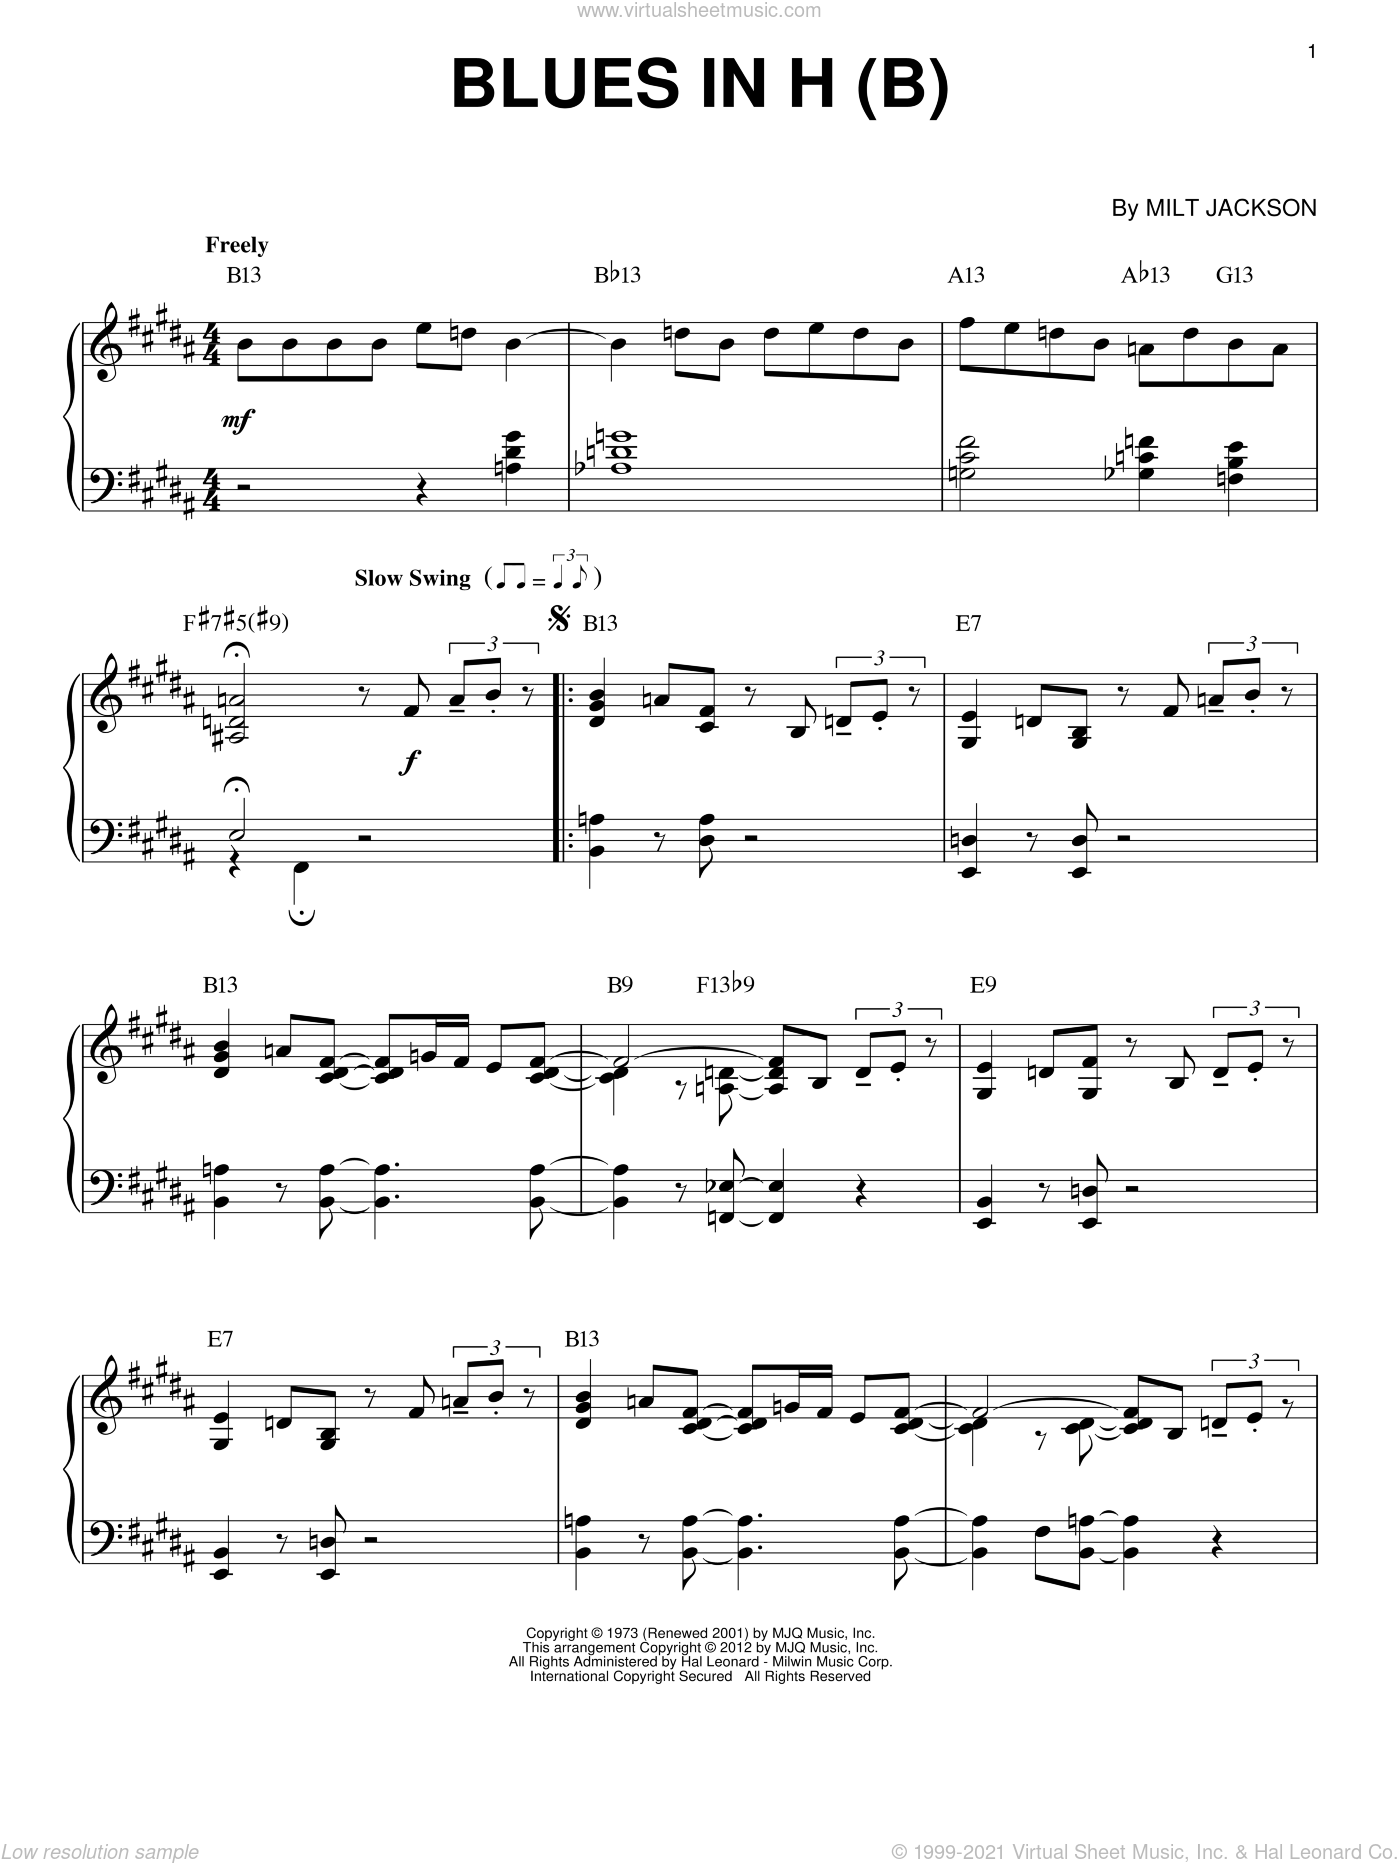 Blues In H (B) (arr. Brent Edstrom) sheet music for piano solo by Modern Jazz Quartet and Milt Jackson, intermediate skill level